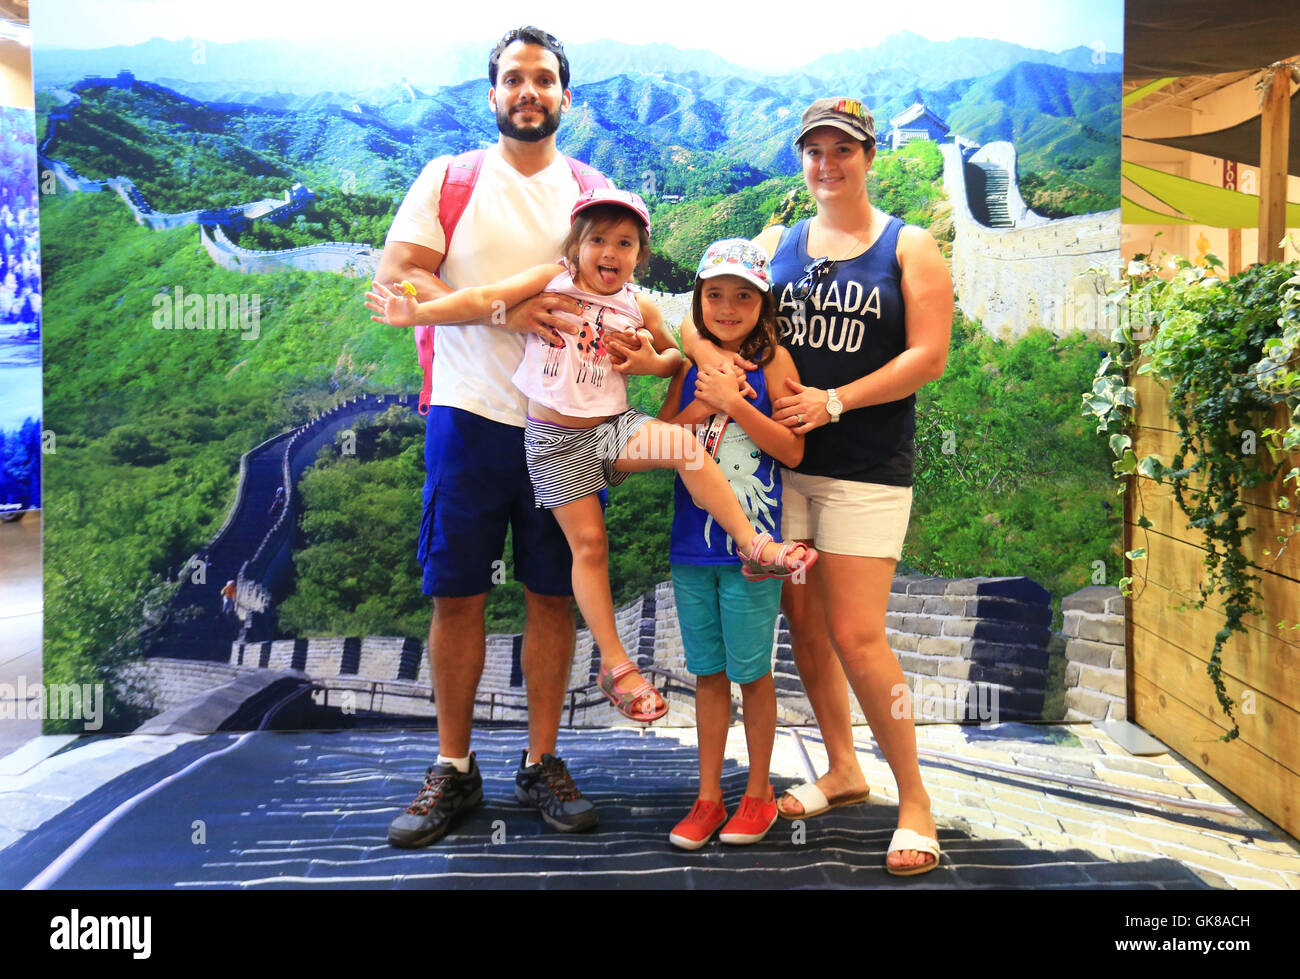 (160819)-- TORONTO, Aug. 19, 2016(Xinhua) -- A family poses for photos in front of a poster of the Great Wall provided - Stock Image